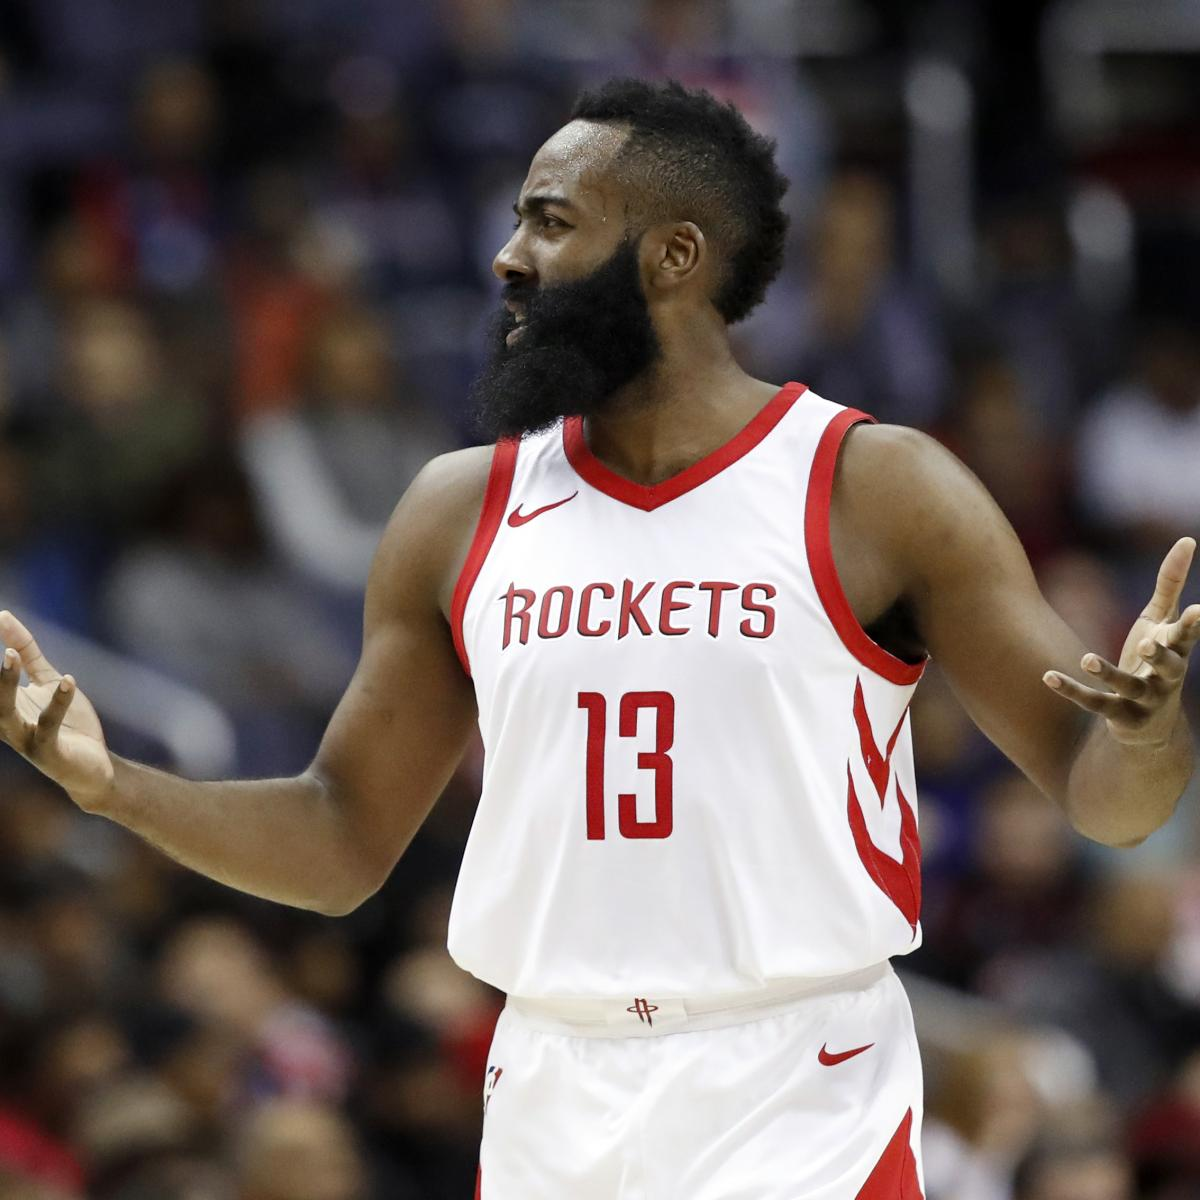 James Harden Injury Report: James Harden Leaves Game Vs. Lakers After Hamstring Injury